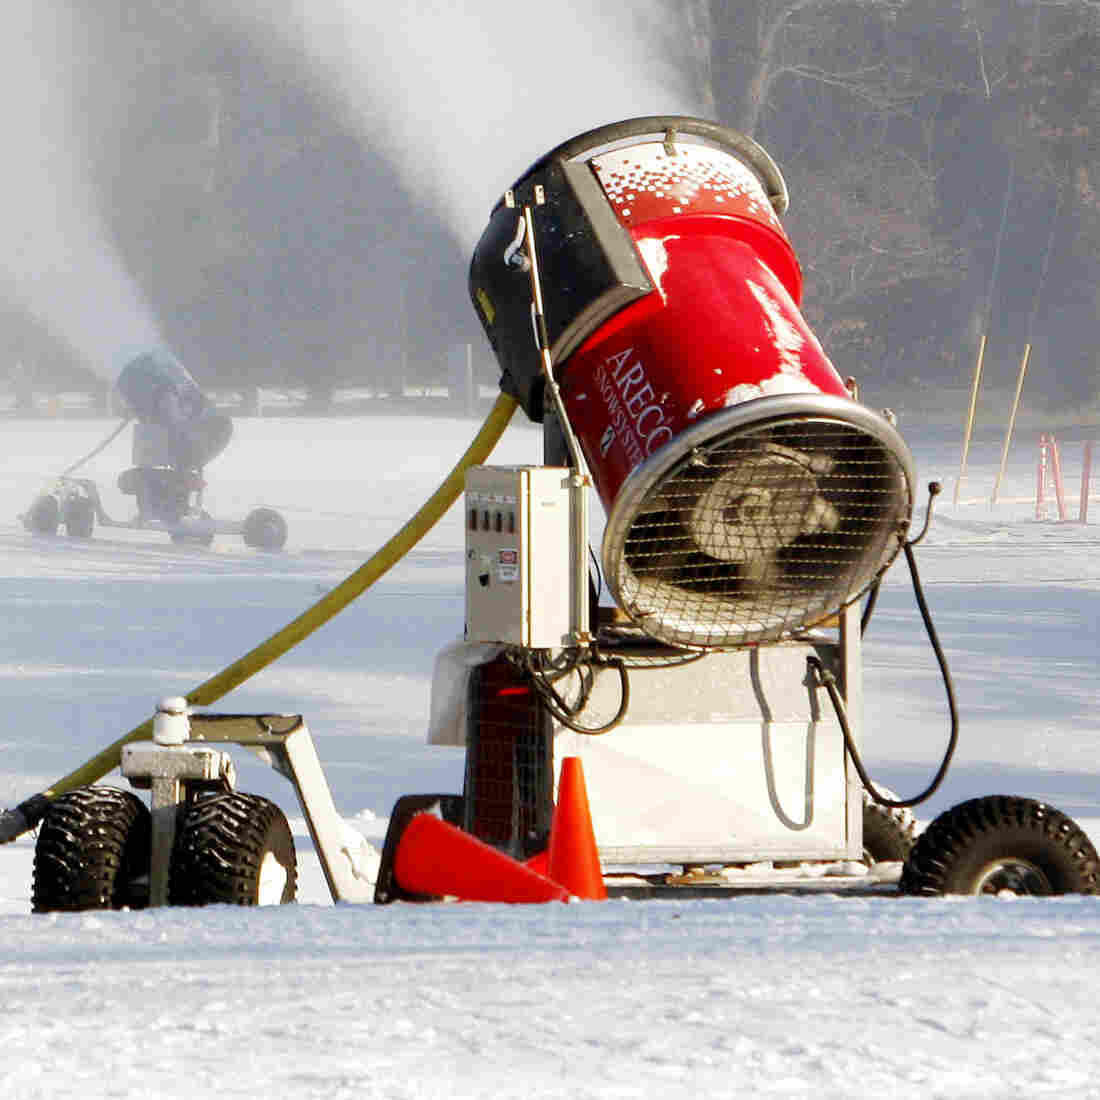 To Get Olympic Snow, Machines Give Nature A Nudge